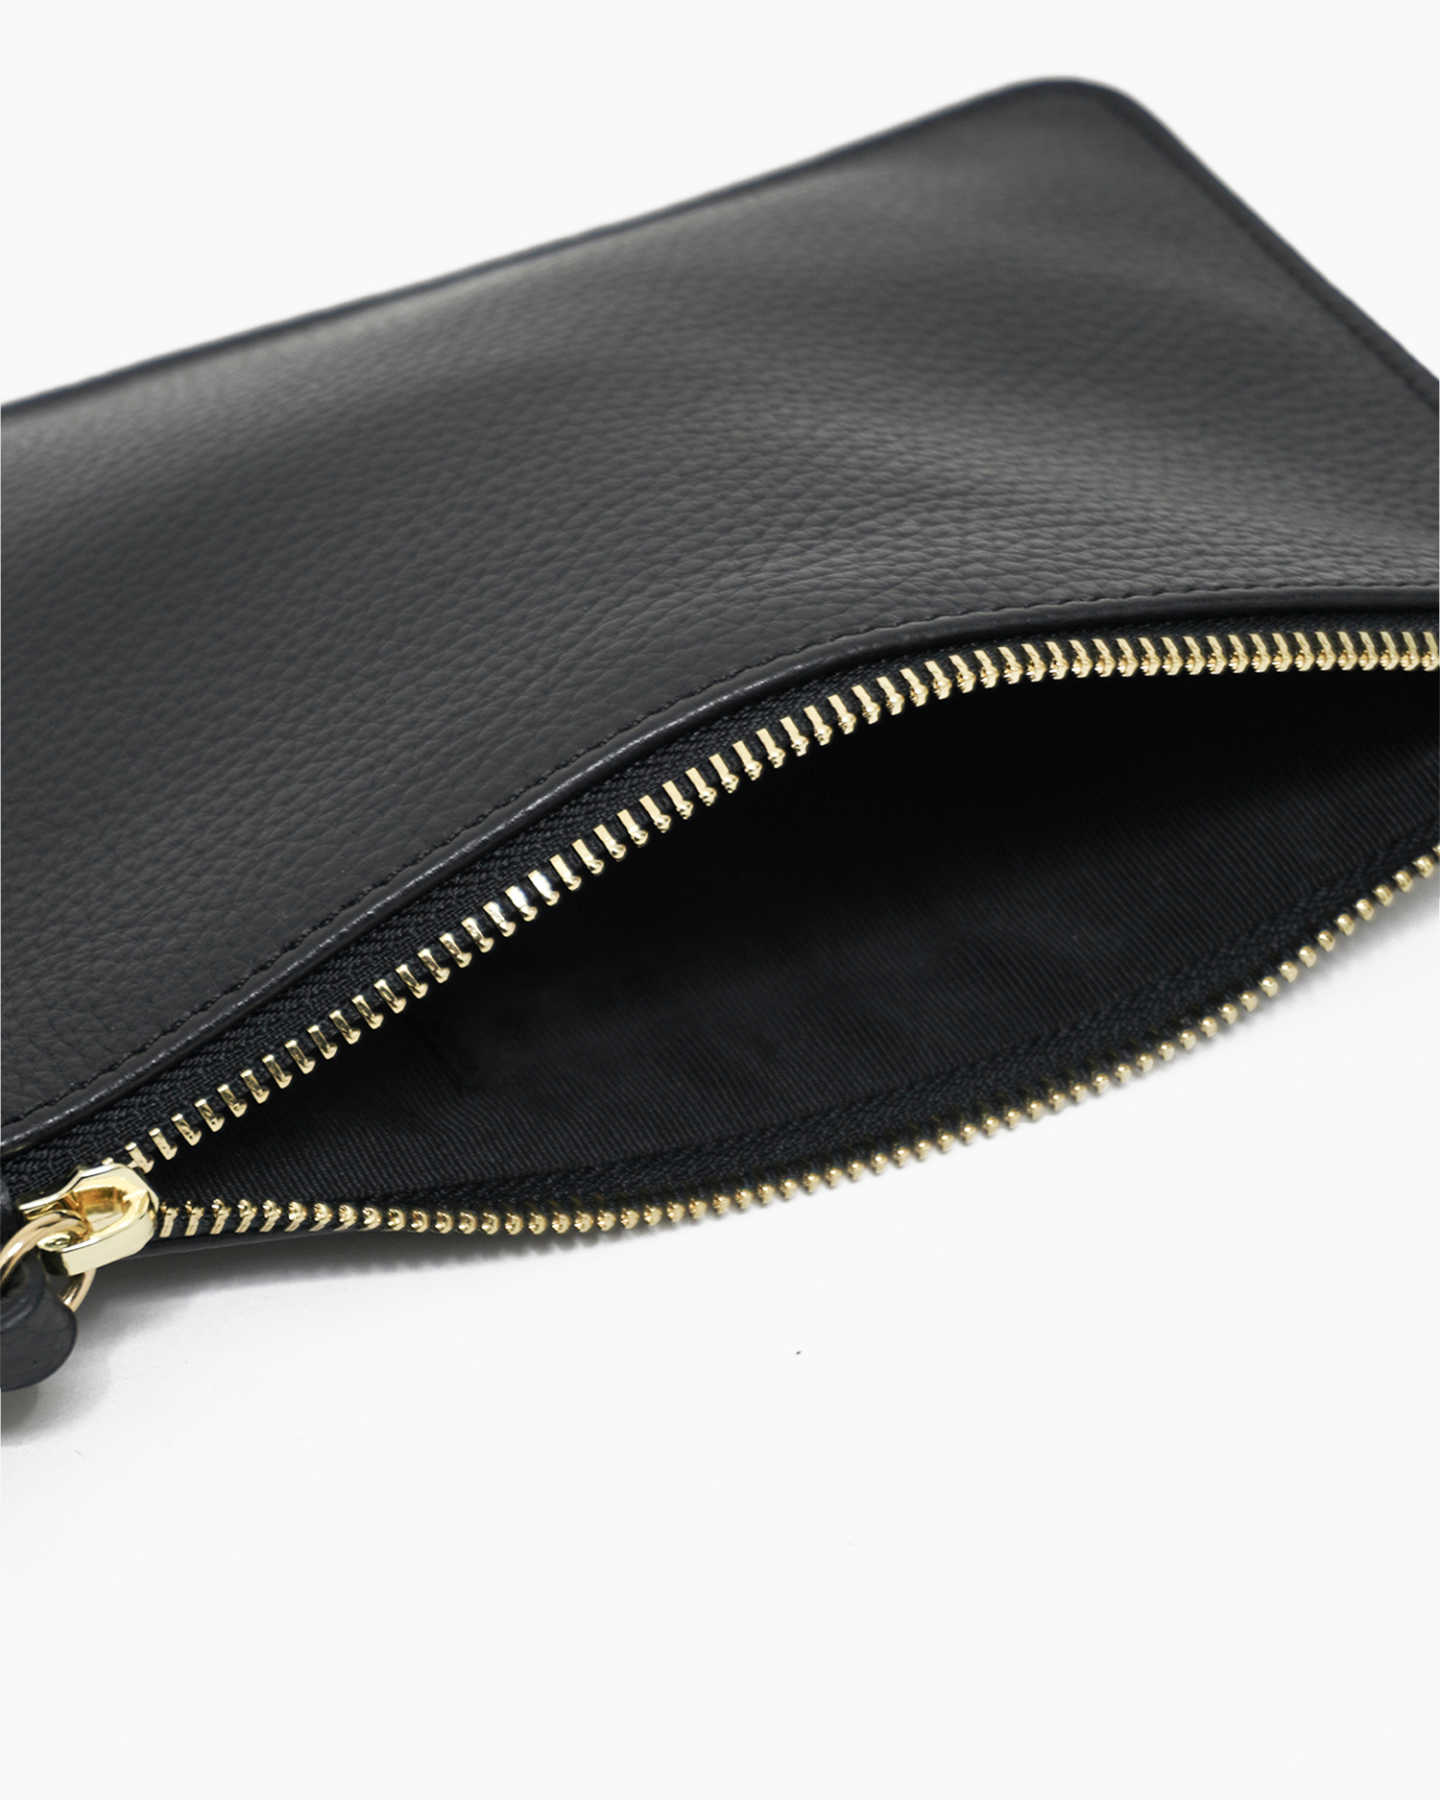 Italian Pebbled Leather Wristlet - Black - 2